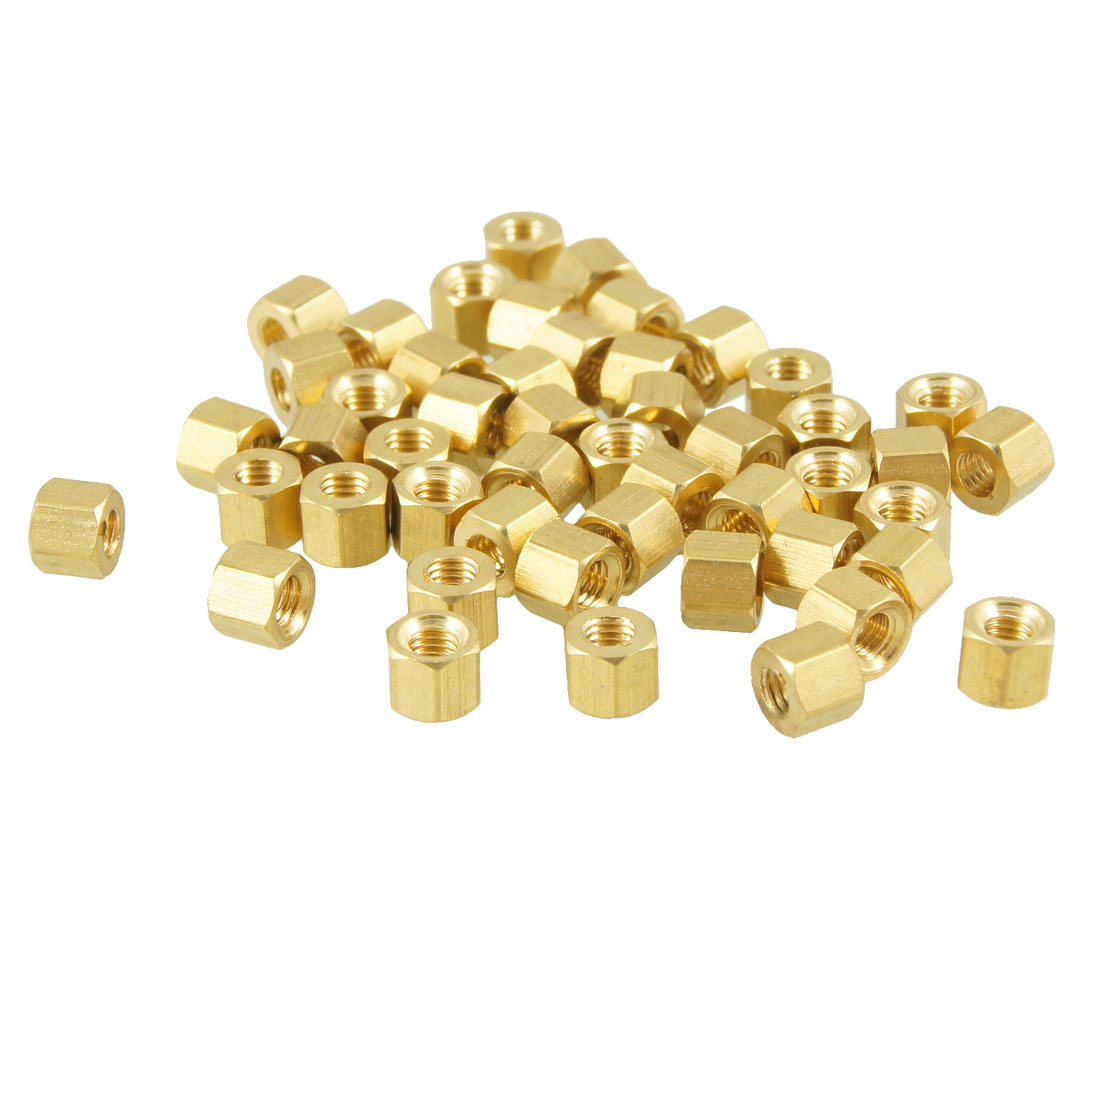 50 Pcs M3X4mm Gold Tone Hexagonal Female Thread Standoff Spacers